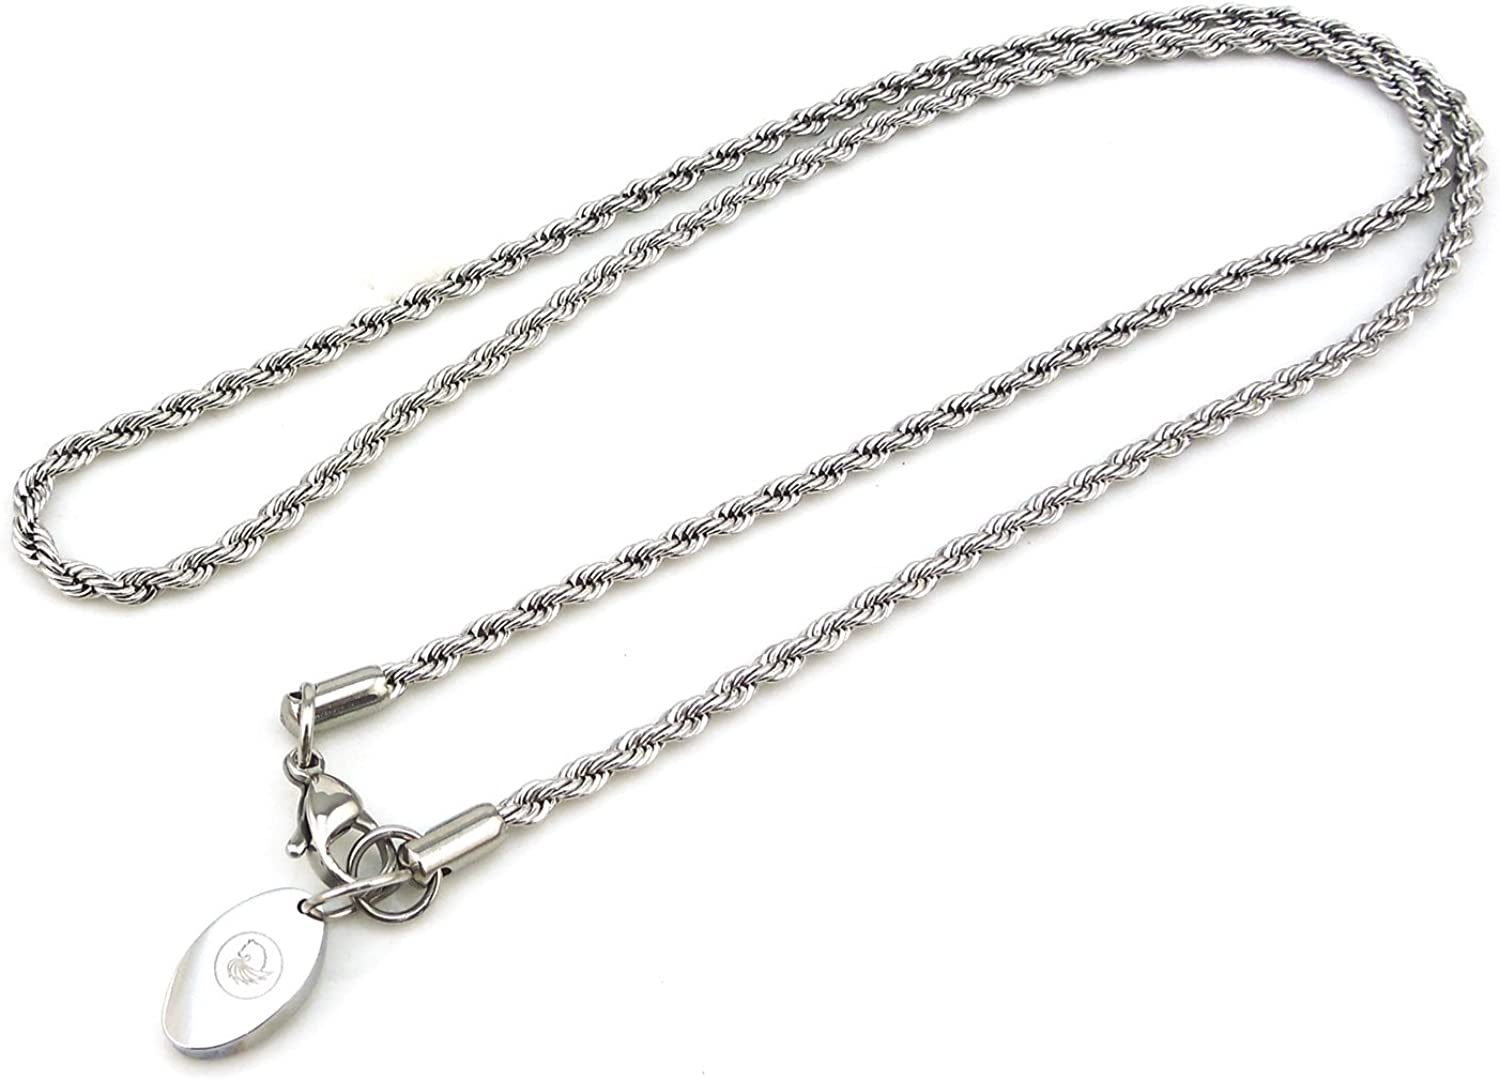 MMC Tag and Dumbbell Silver Pendants Necklaces